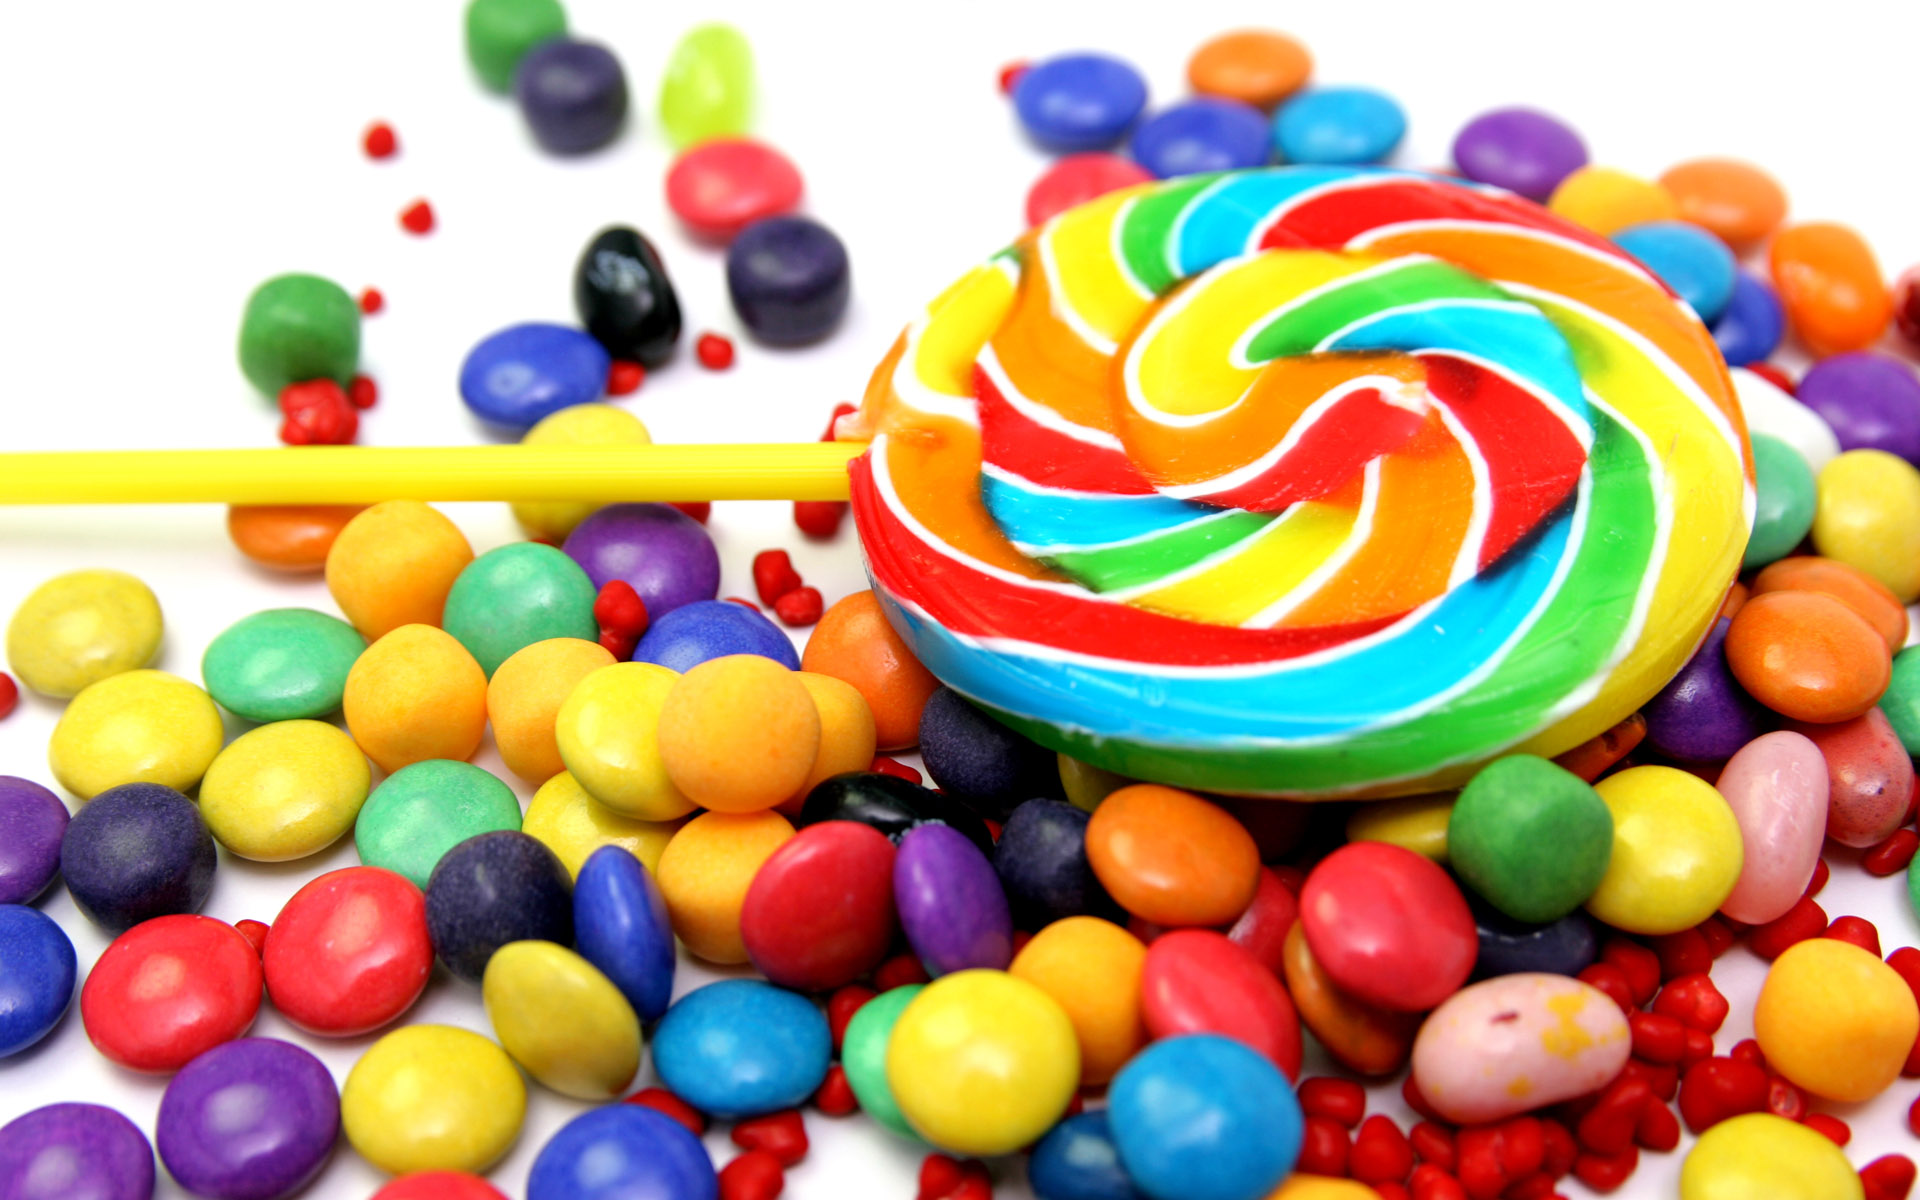 Scientists Invent Cavity-Free Candy. (Hey, Our Kids Can't Get Any Fatter) - RYOT News